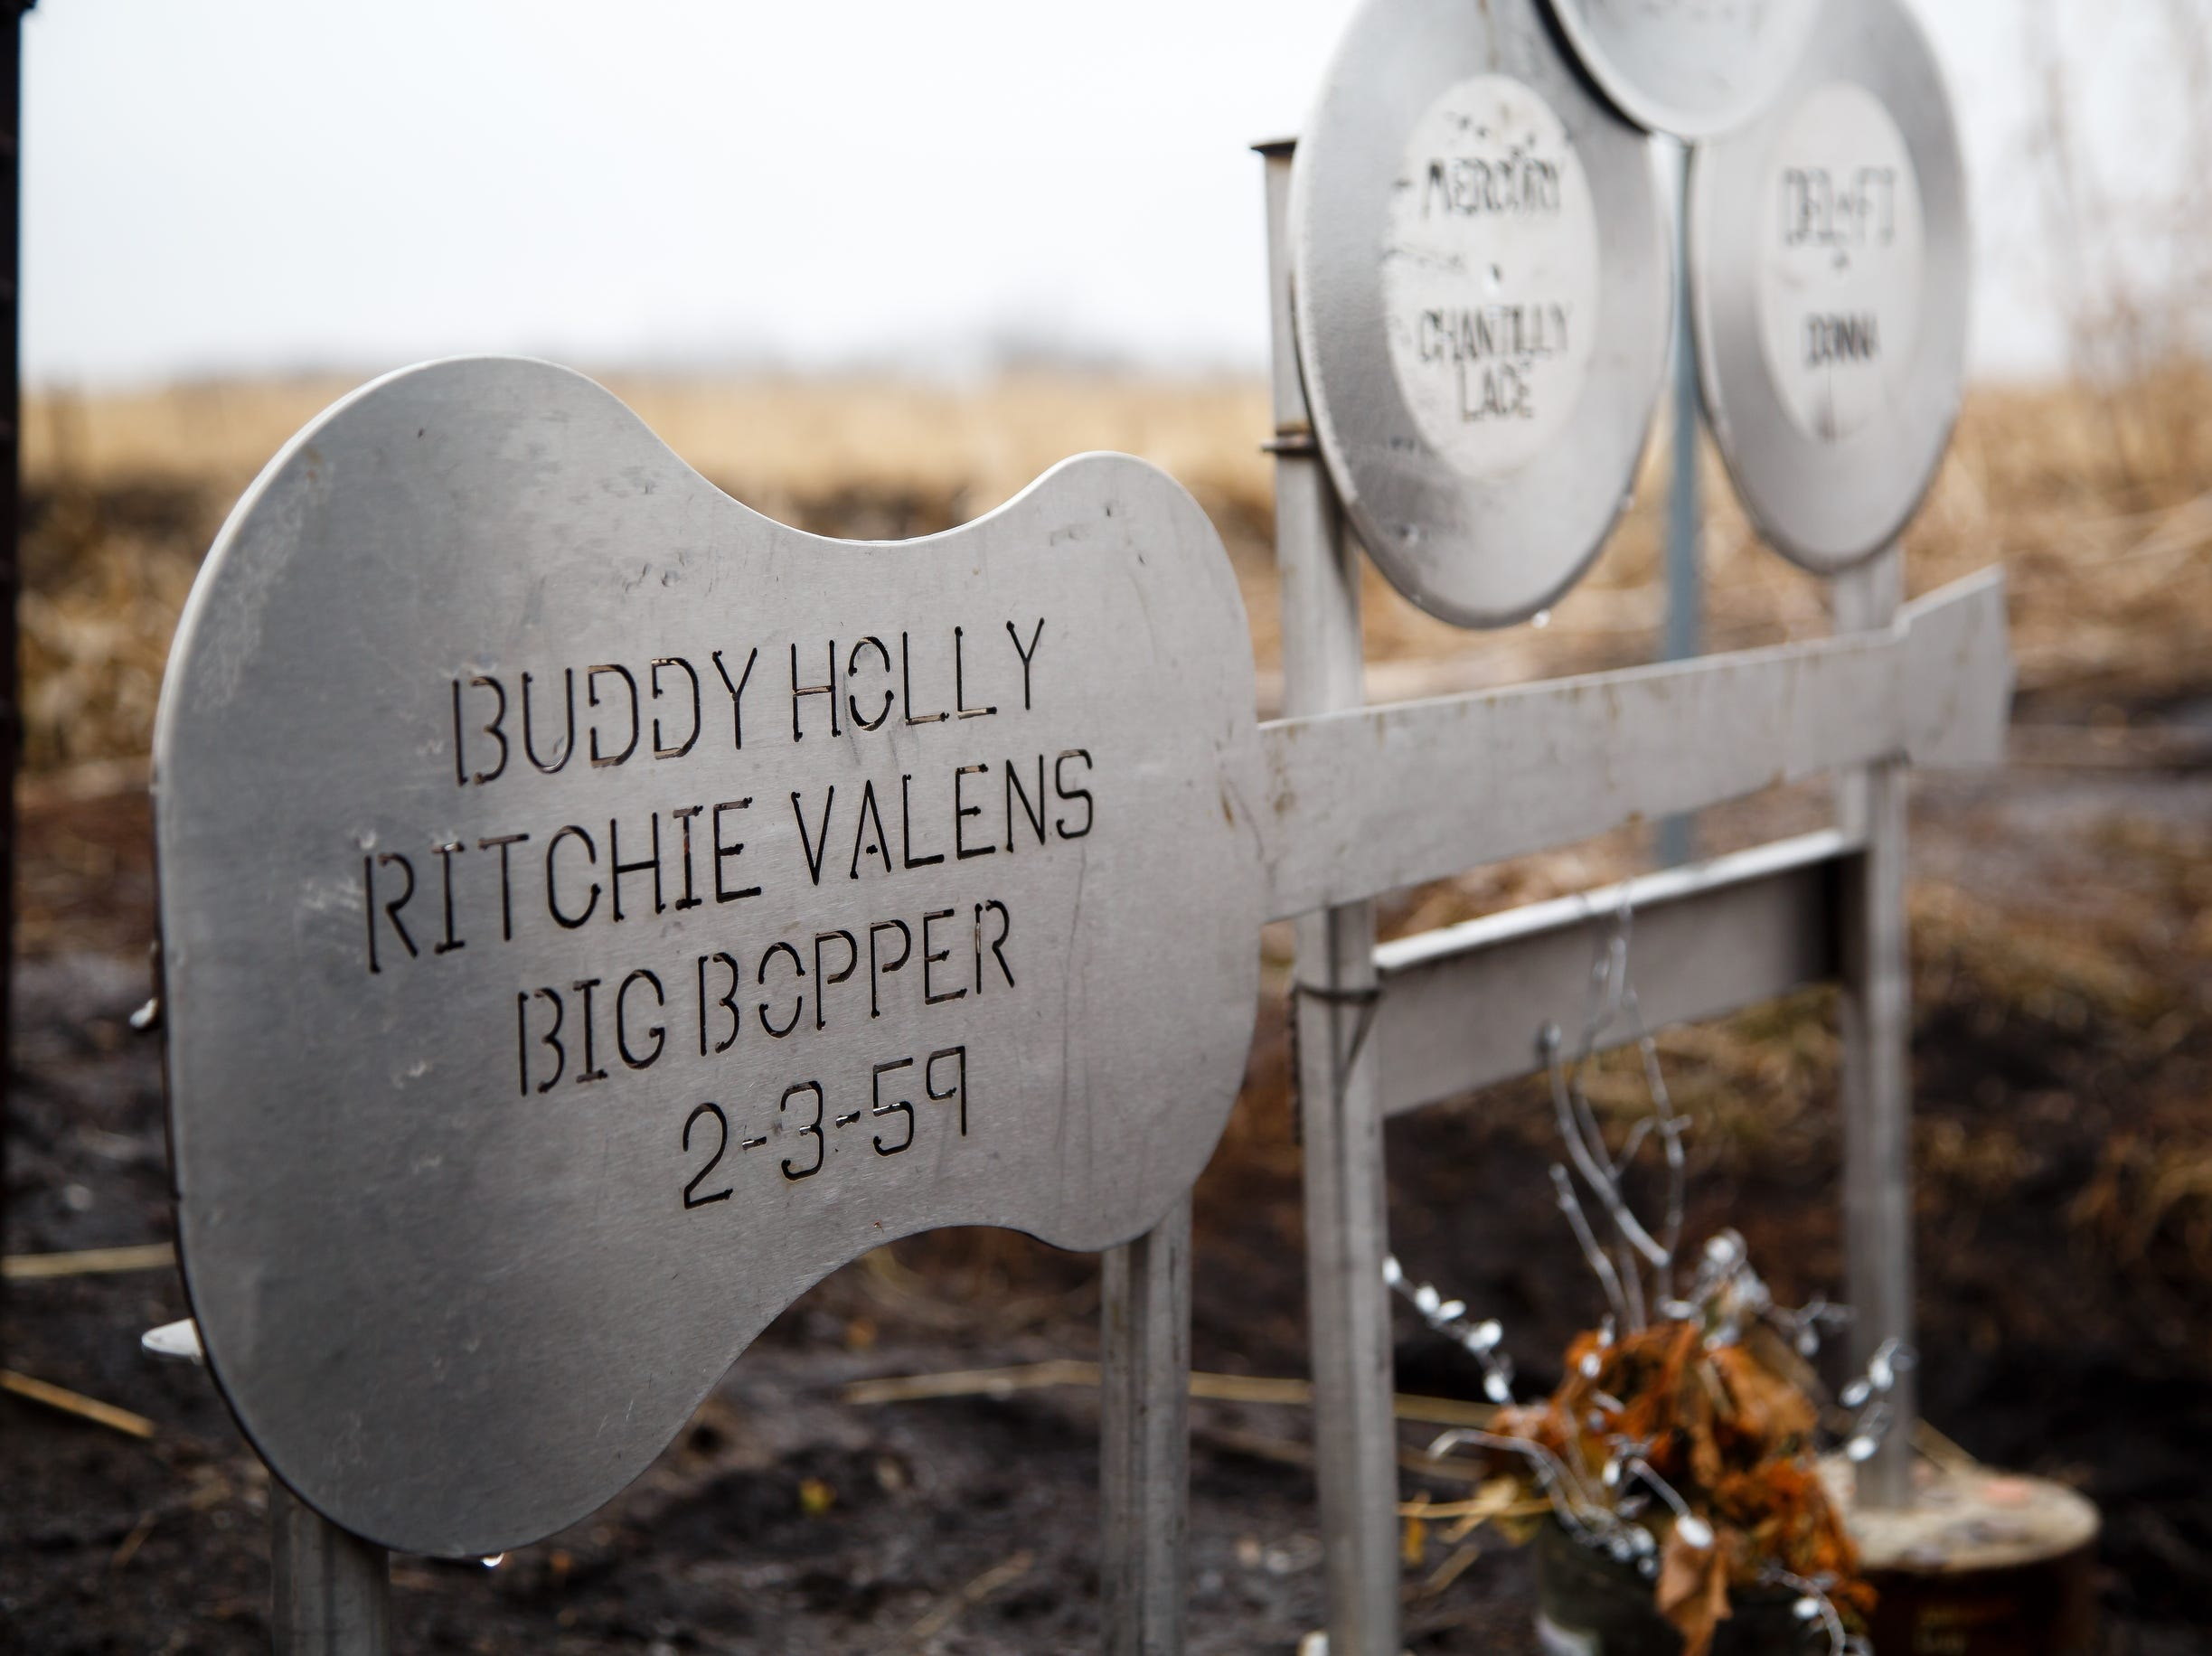 "A memorial to Buddy Holly, Ritchie Valens, and J.P. ""the Big Bopper"" Richardson sits in the field on Tuesday, Jan. 15, 2019, in Clear Lake where their plane crashed on February 3, 1959 after a concert at the Surf Ballroom during the Winter Dance Party tour."